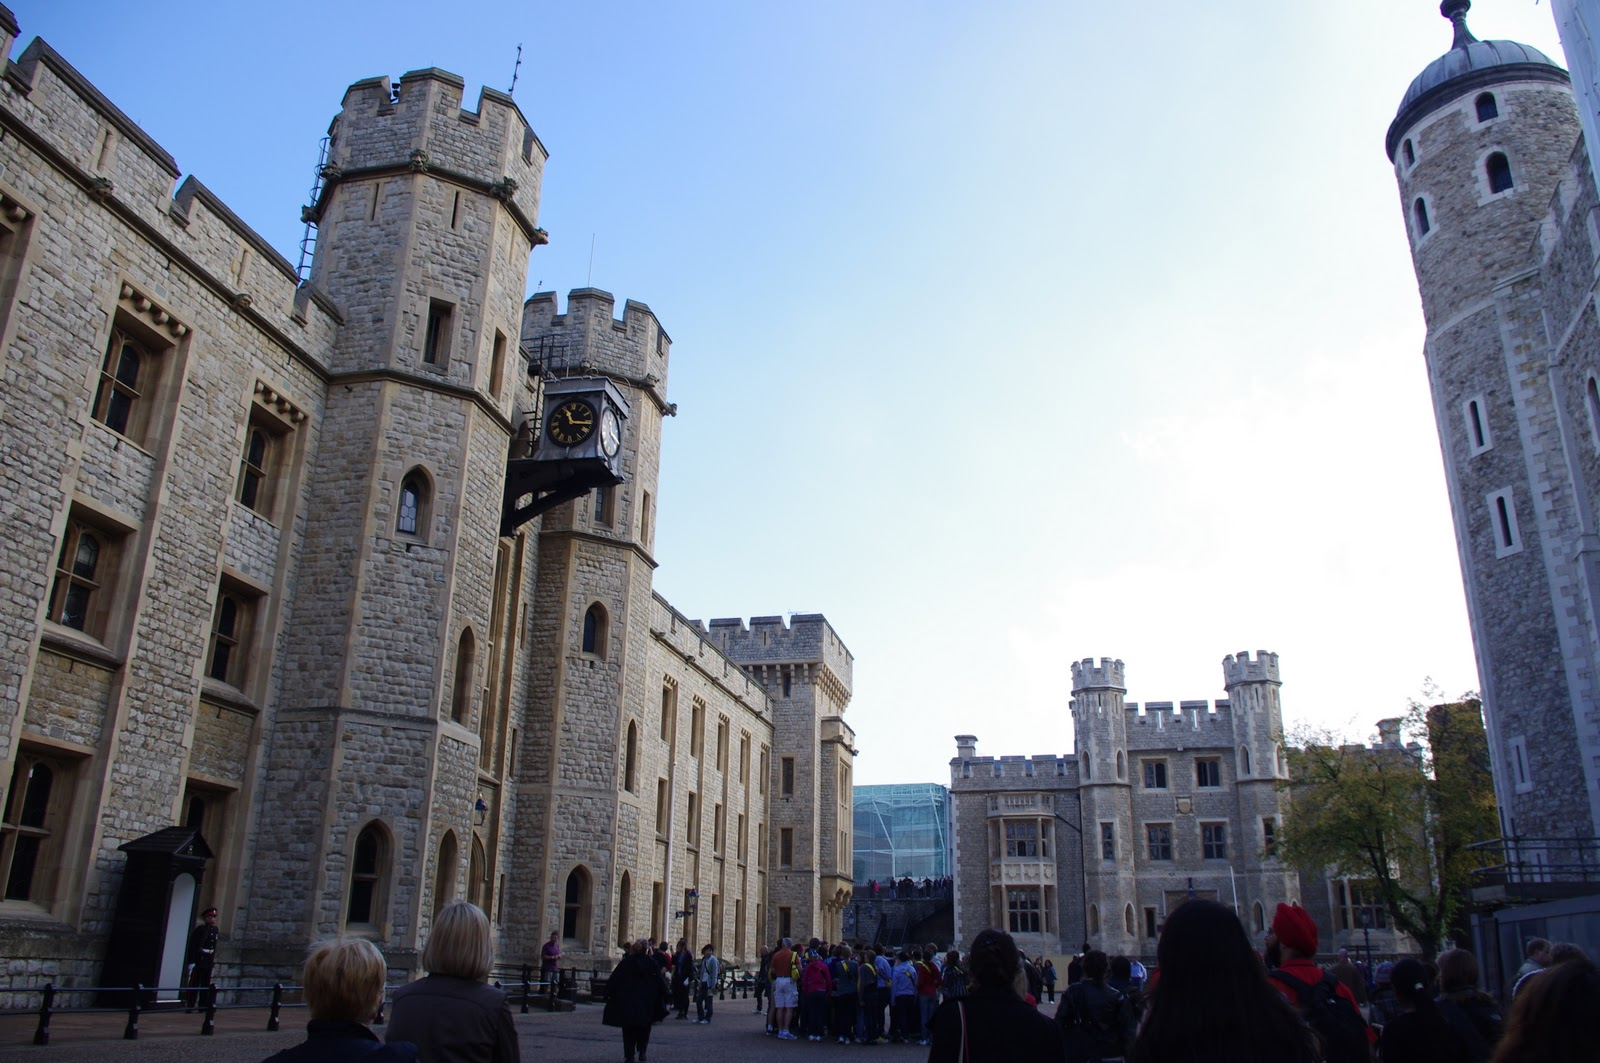 Inside Tower Of London Crown Jewels